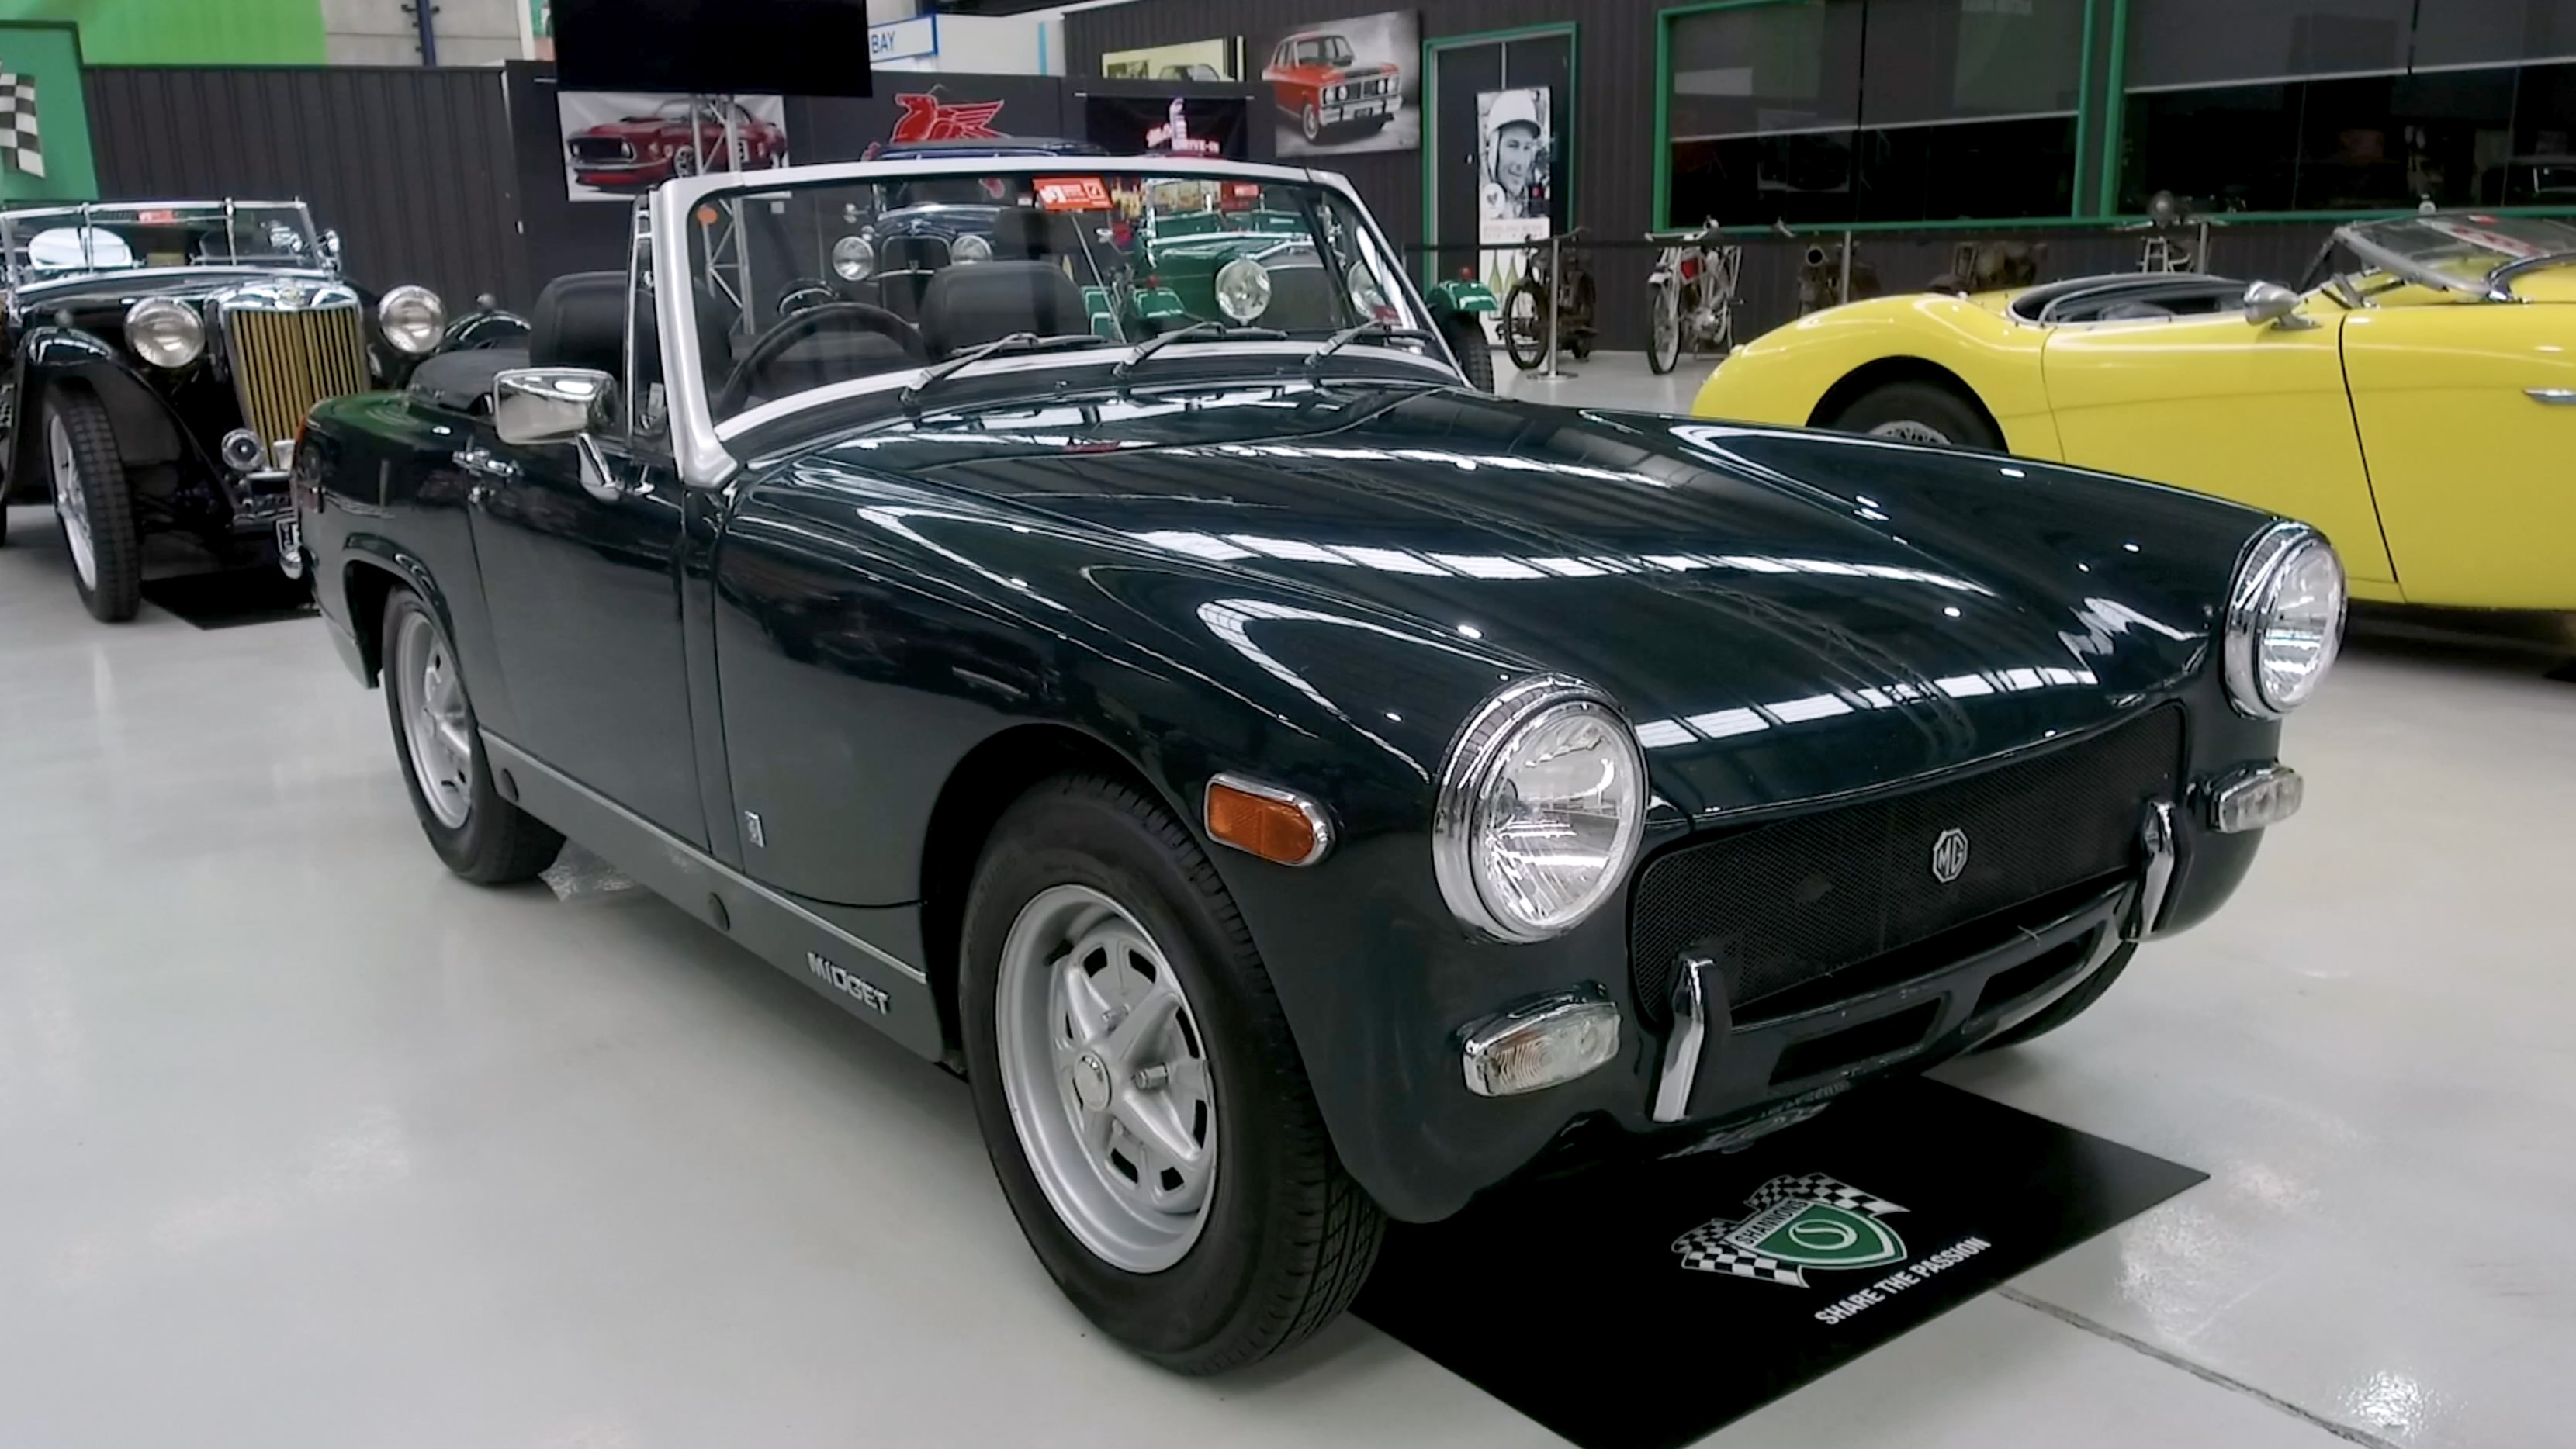 1977 MG Midget Roadster - 2020 Shannons Spring Timed Online Auction